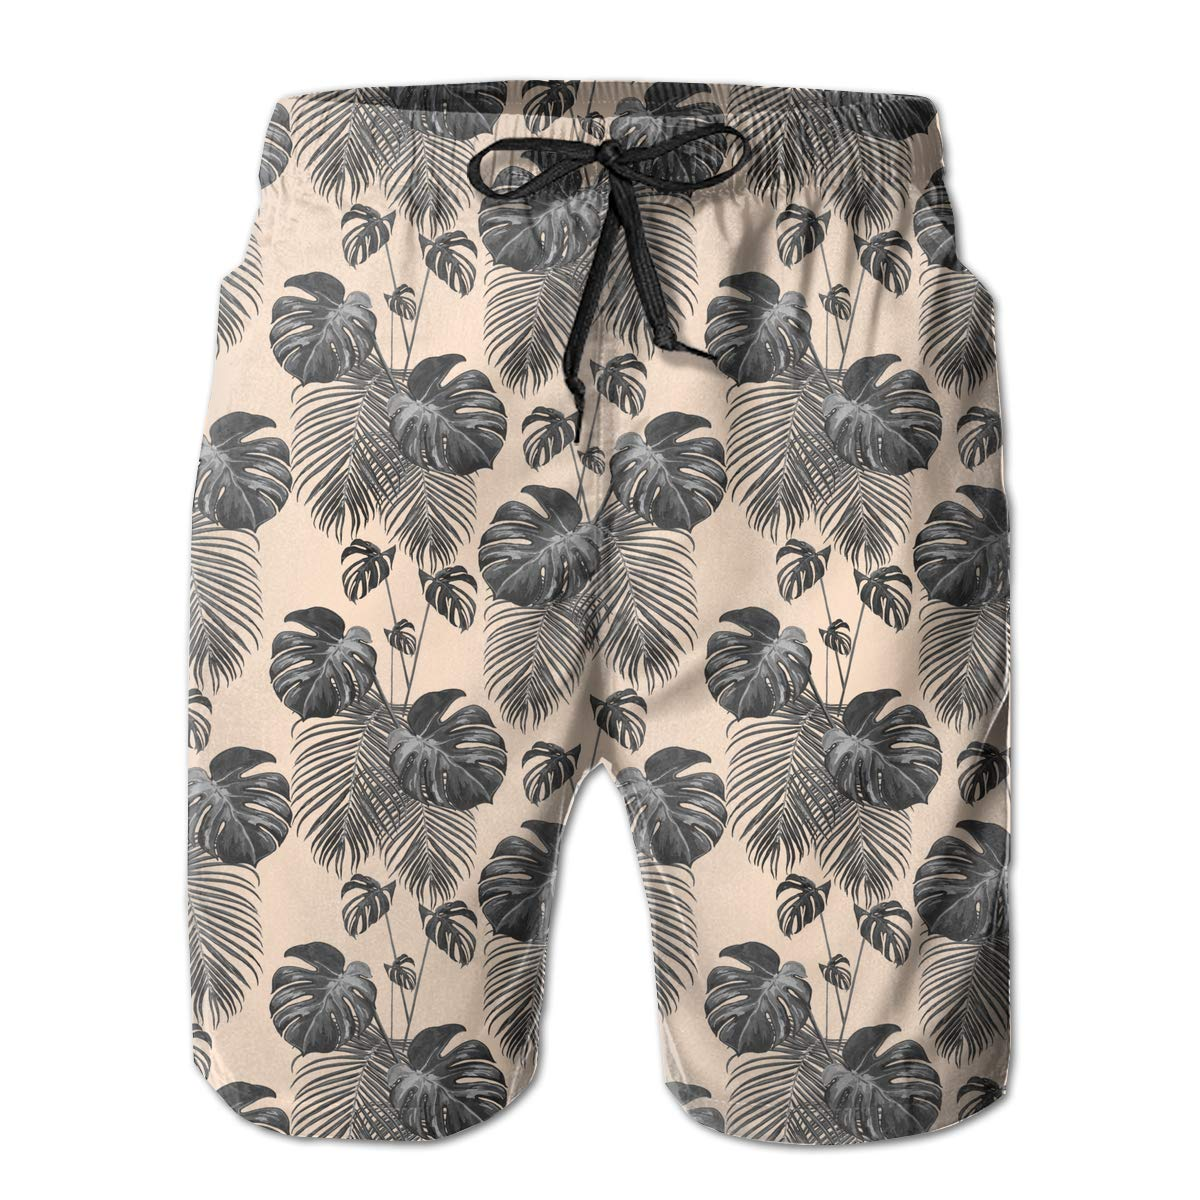 Xk7@KU Mens Athletic Swim Trunks Polyester Tropical Palm Leaves3 Pattern Swimsuit with Pockets